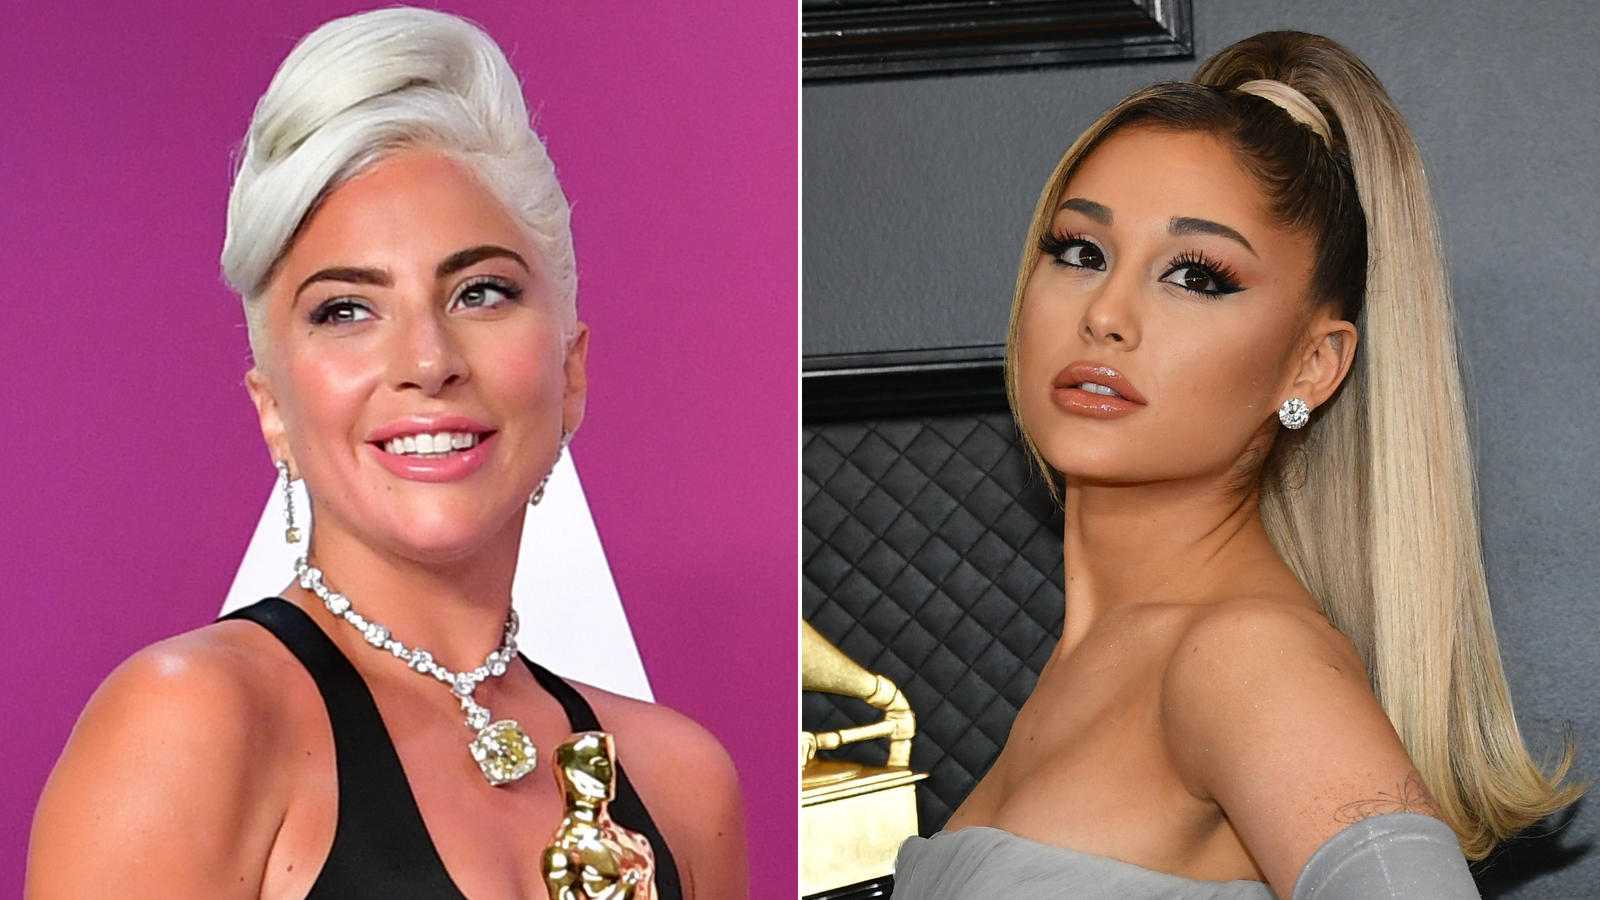 Ariana Grande and Lady Gaga are here with your summer forecast